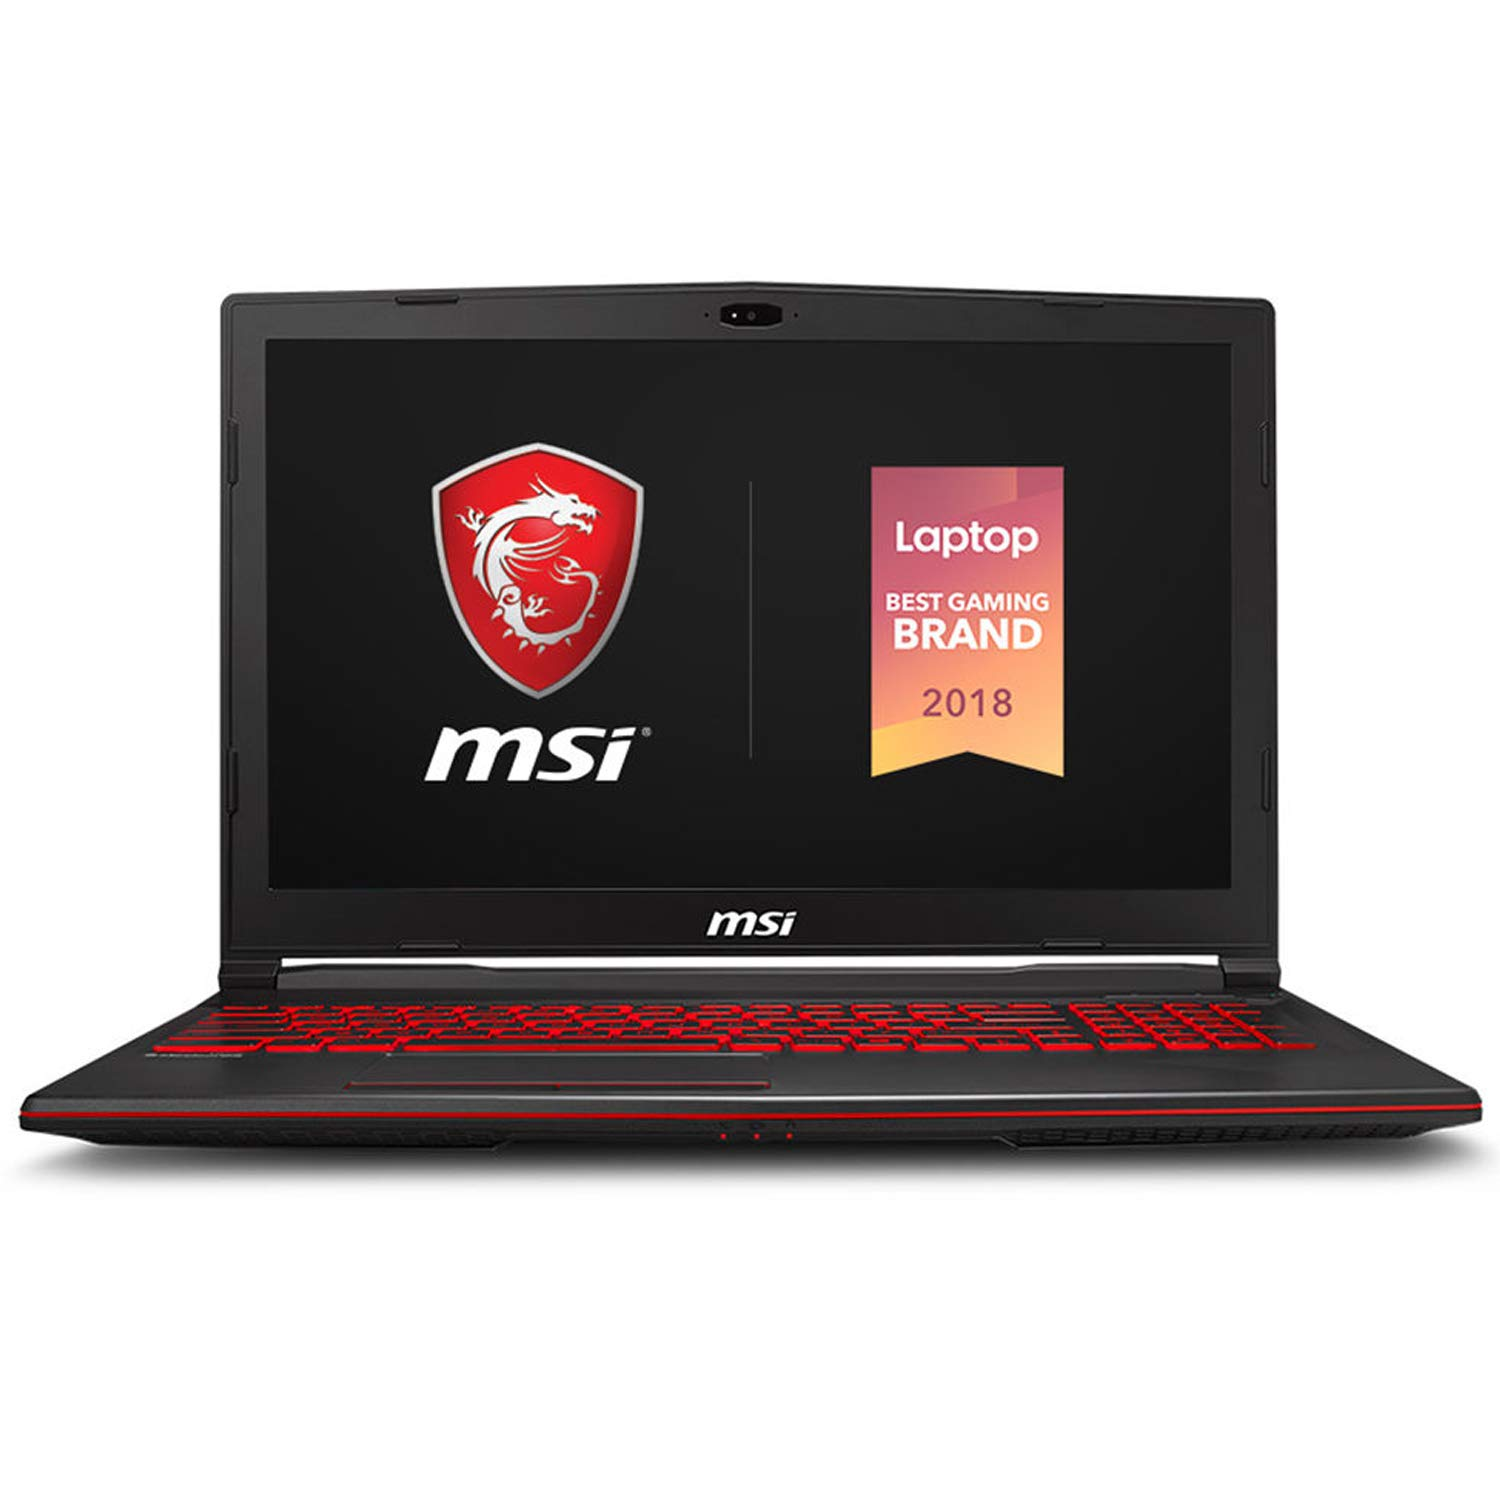 【お年玉セール特価】 MSI GS65 Stealth-007 Premium Gaming Premium and Business Laptop PCIe (Intel Gaming 8th Gen i7-8750H 6-Core, 16GB RAM, 512GB PCIe SSD, 15.6